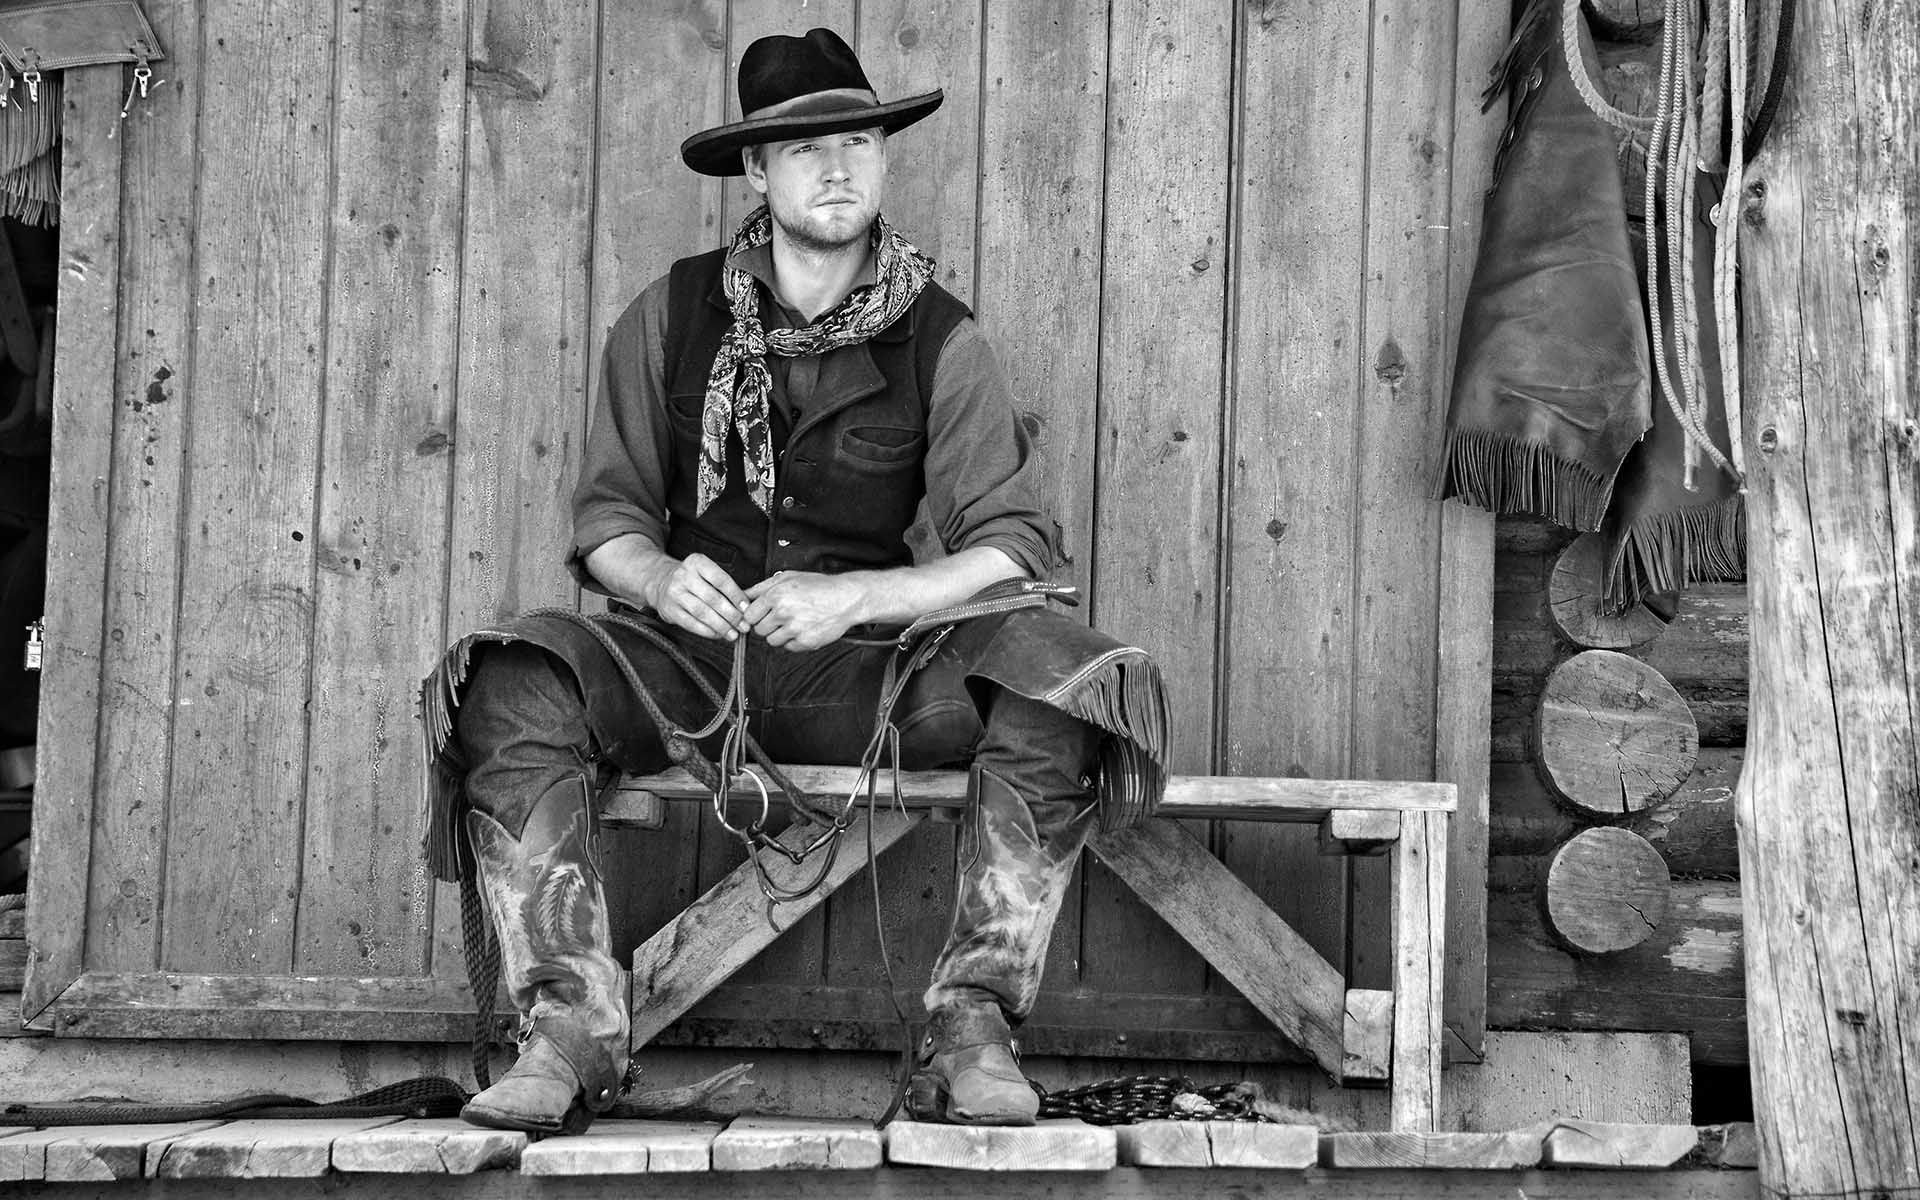 Cowboy William Dunn, multi-generational Wyomingite, at the Triangle X Ranch, in Jackson Hole